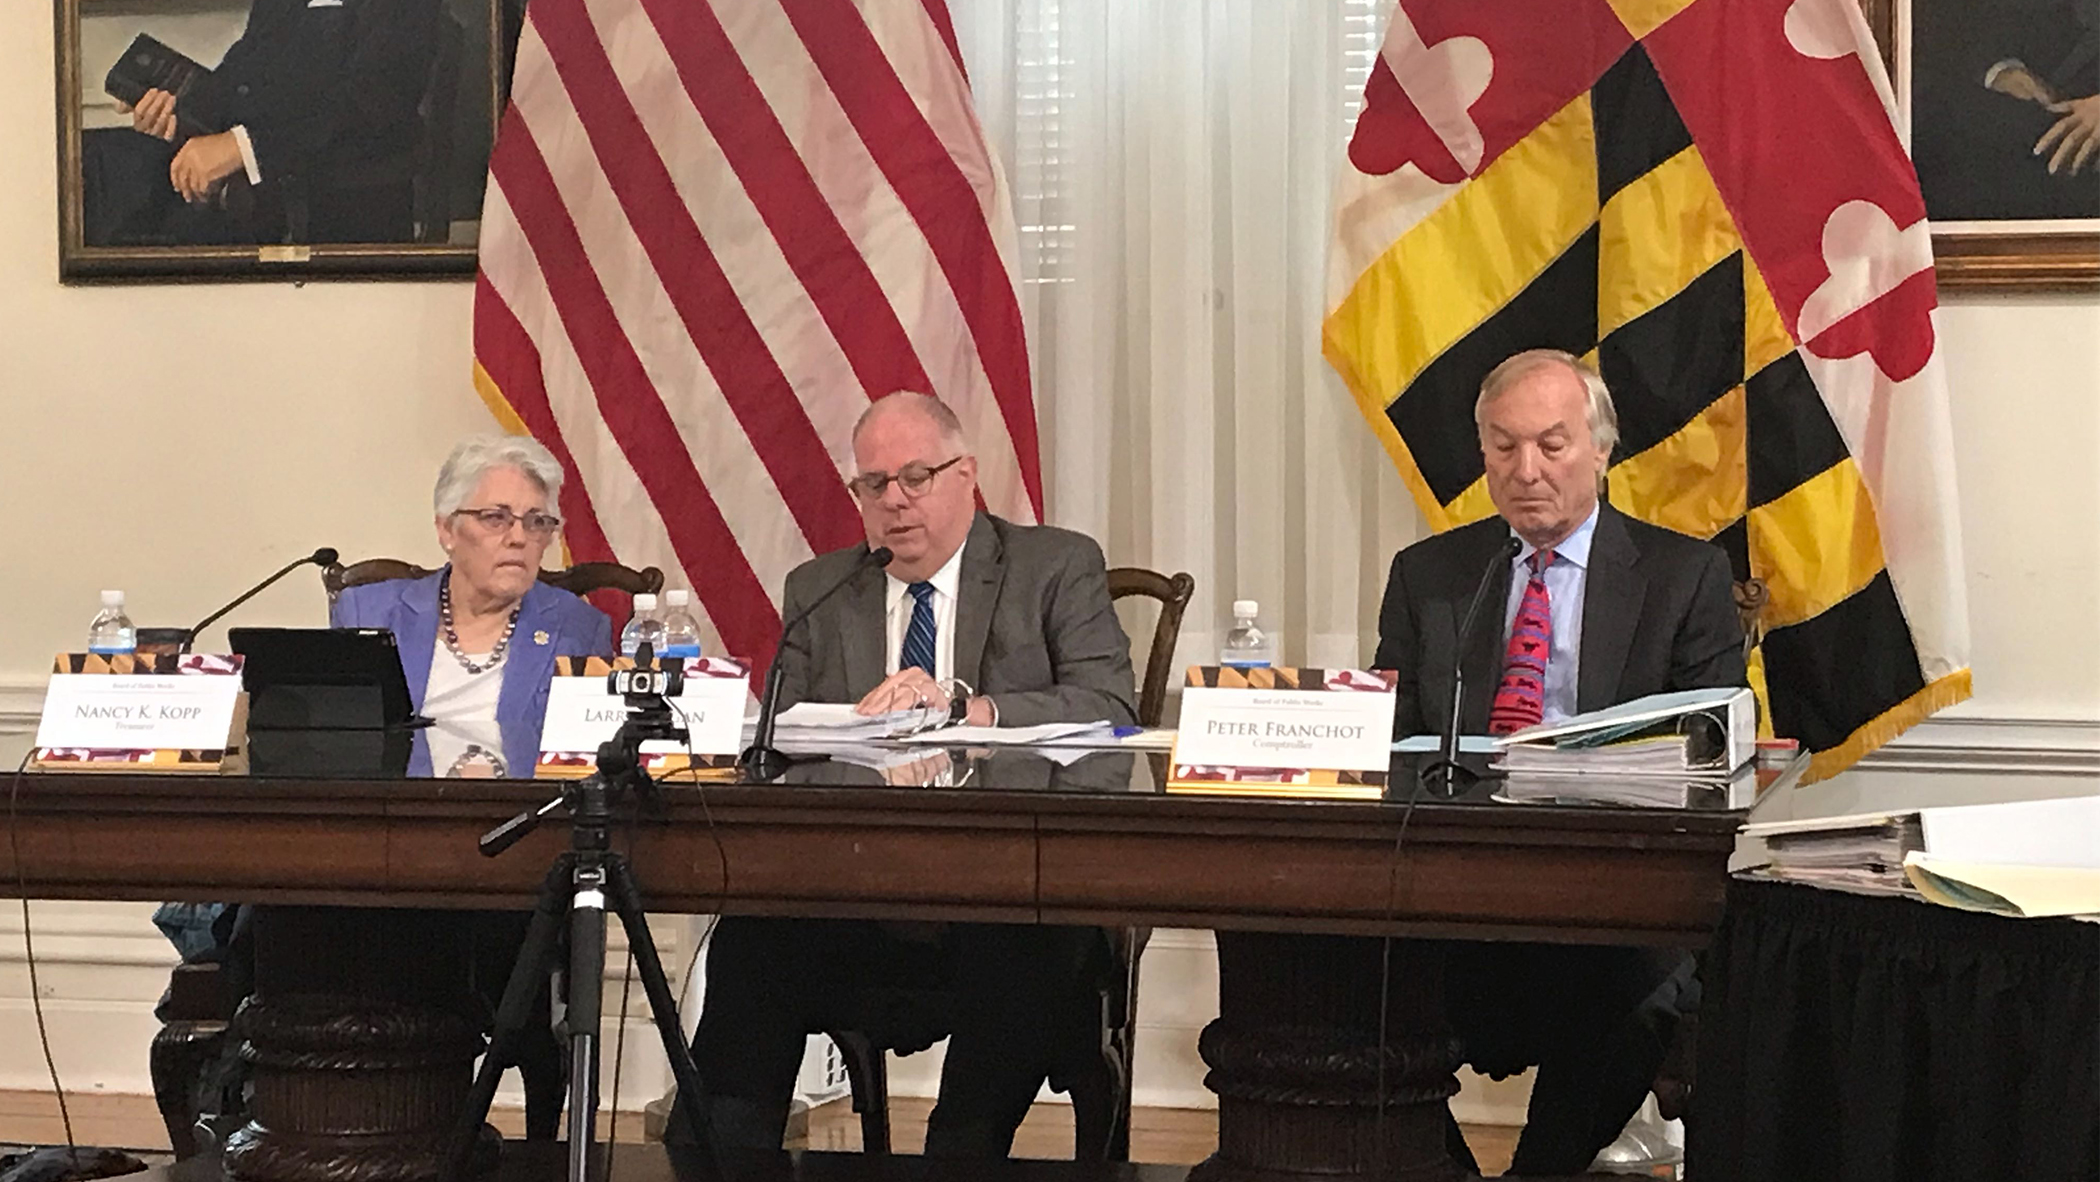 Gov. Larry Hogan spoke about the traffic problems occurring on the Bay Bridge at the Board of Public Works meeting on Wednesday, Oct. 16, 2019. (Photo by Teresa Johnson/Capital News Service)